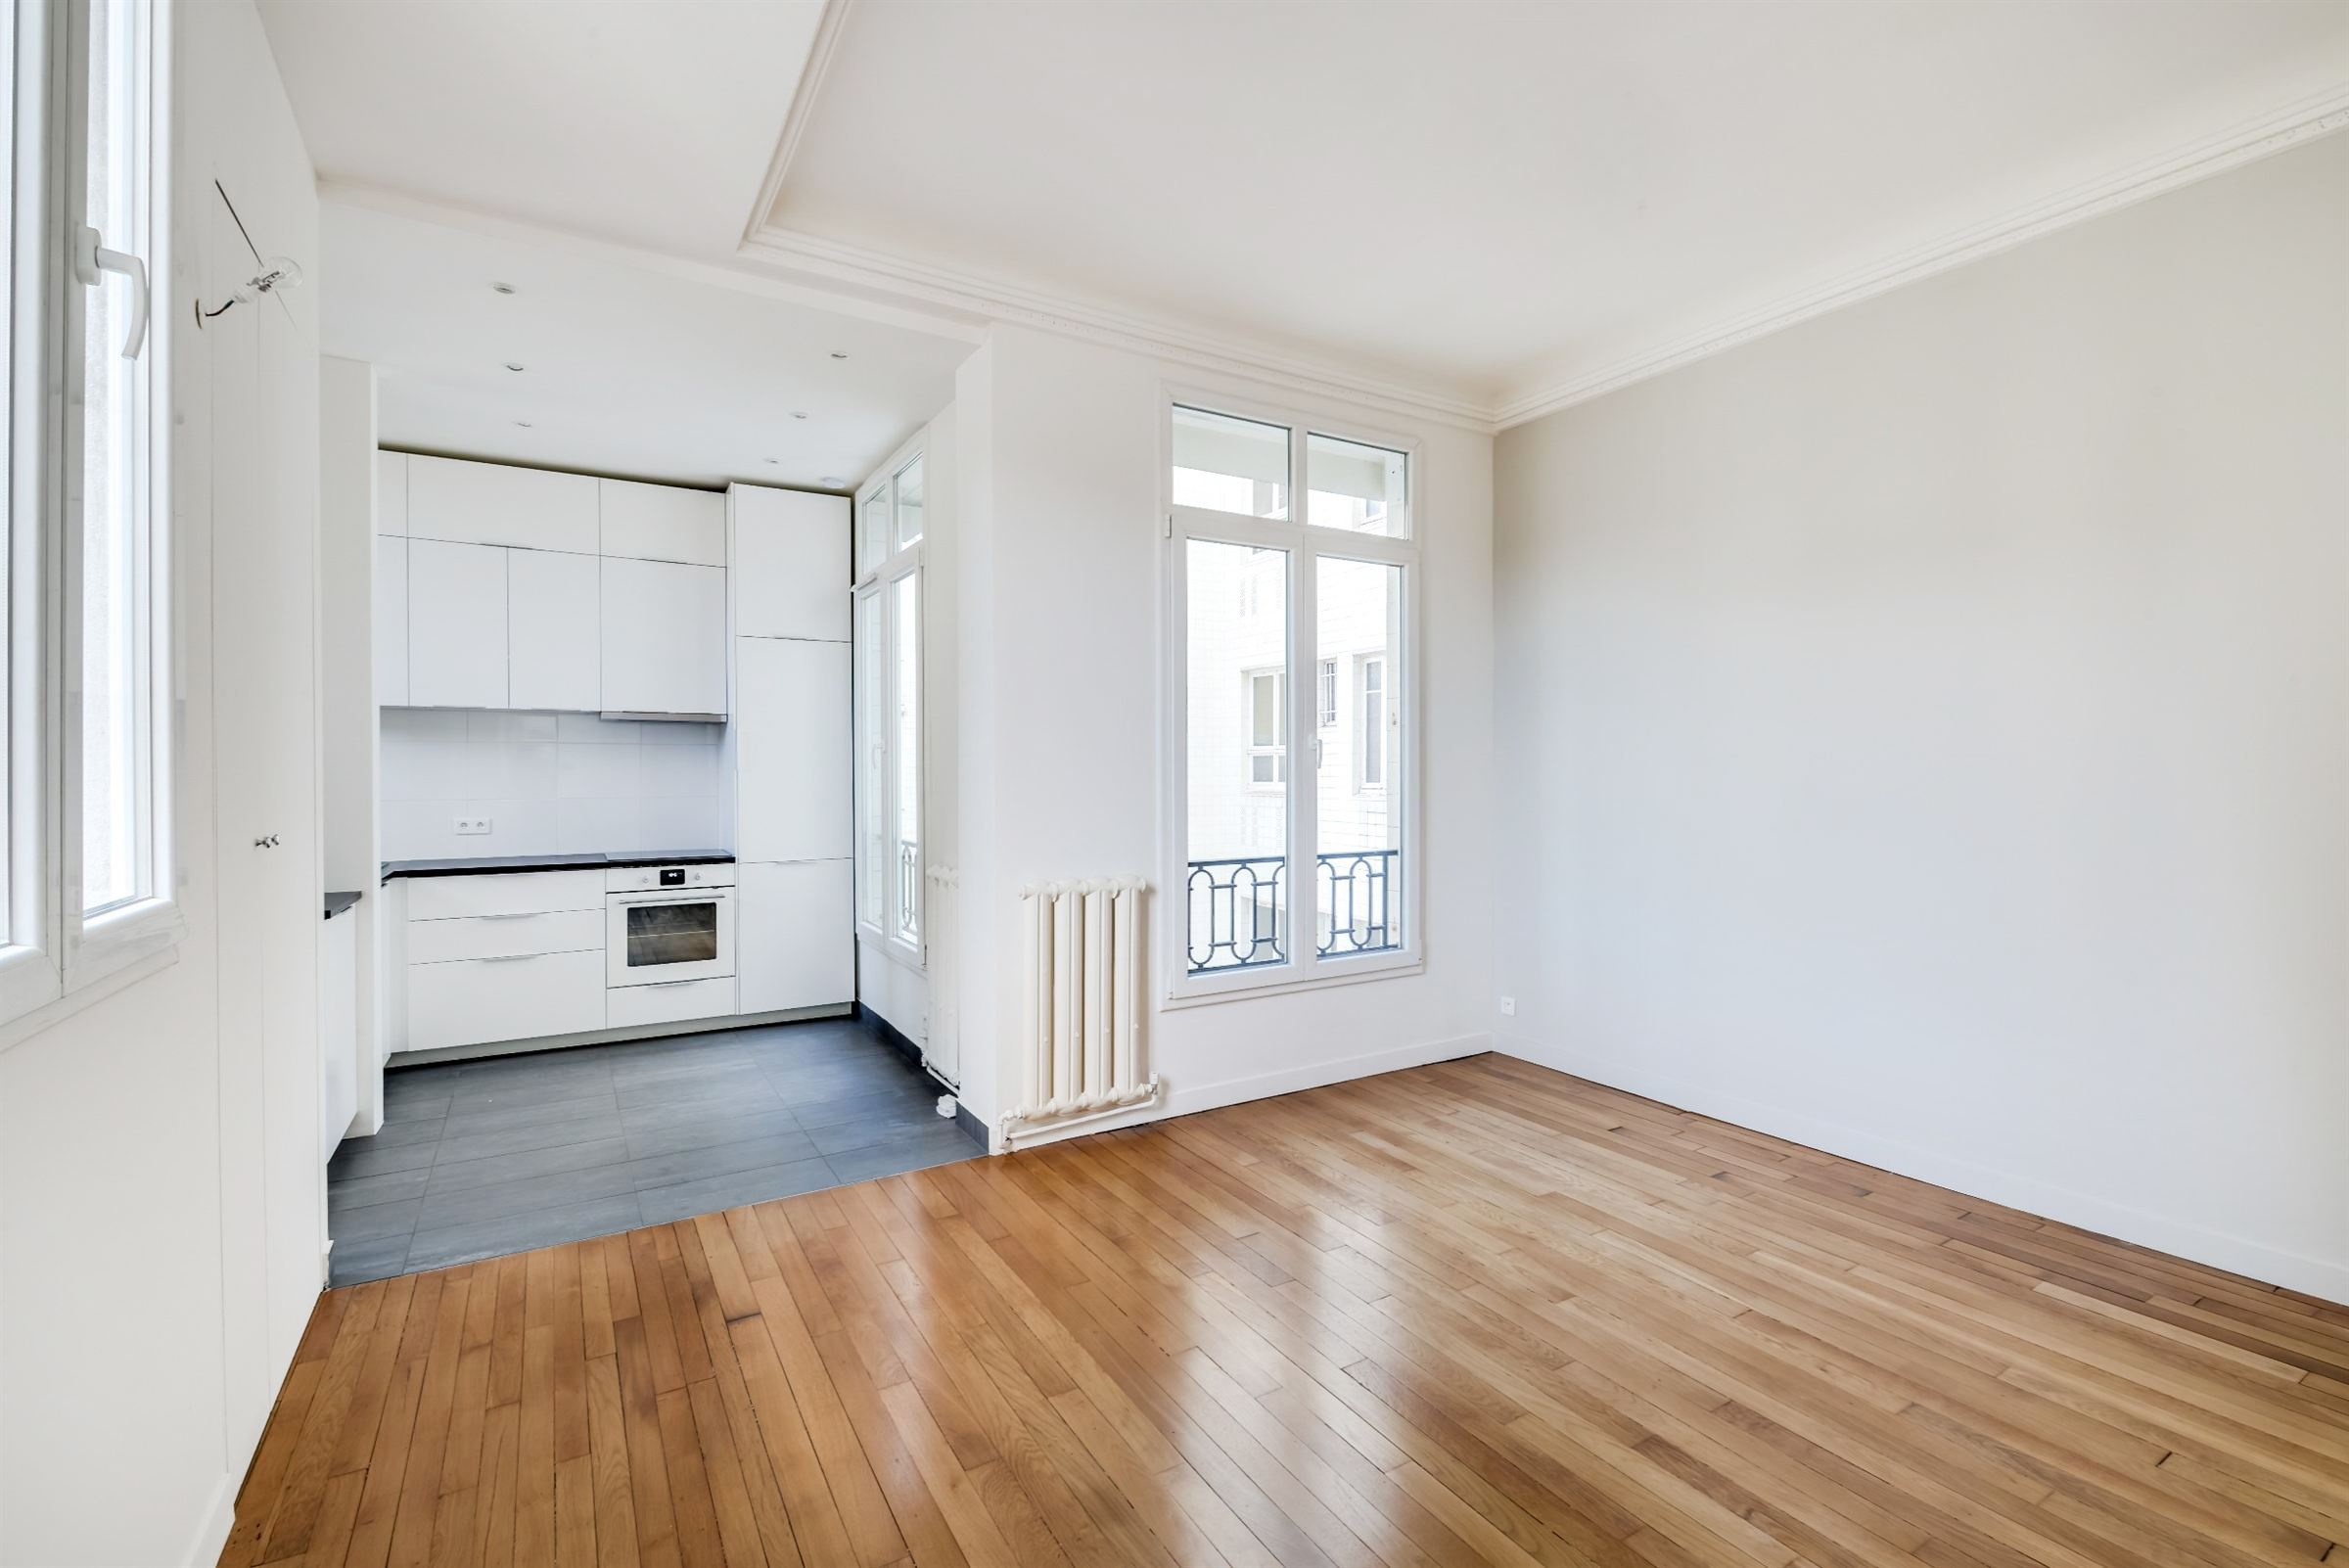 sales property at A fully renovated apartment of 52 sq.m for sale, Paris 17 - Pereire, 1 bedroom